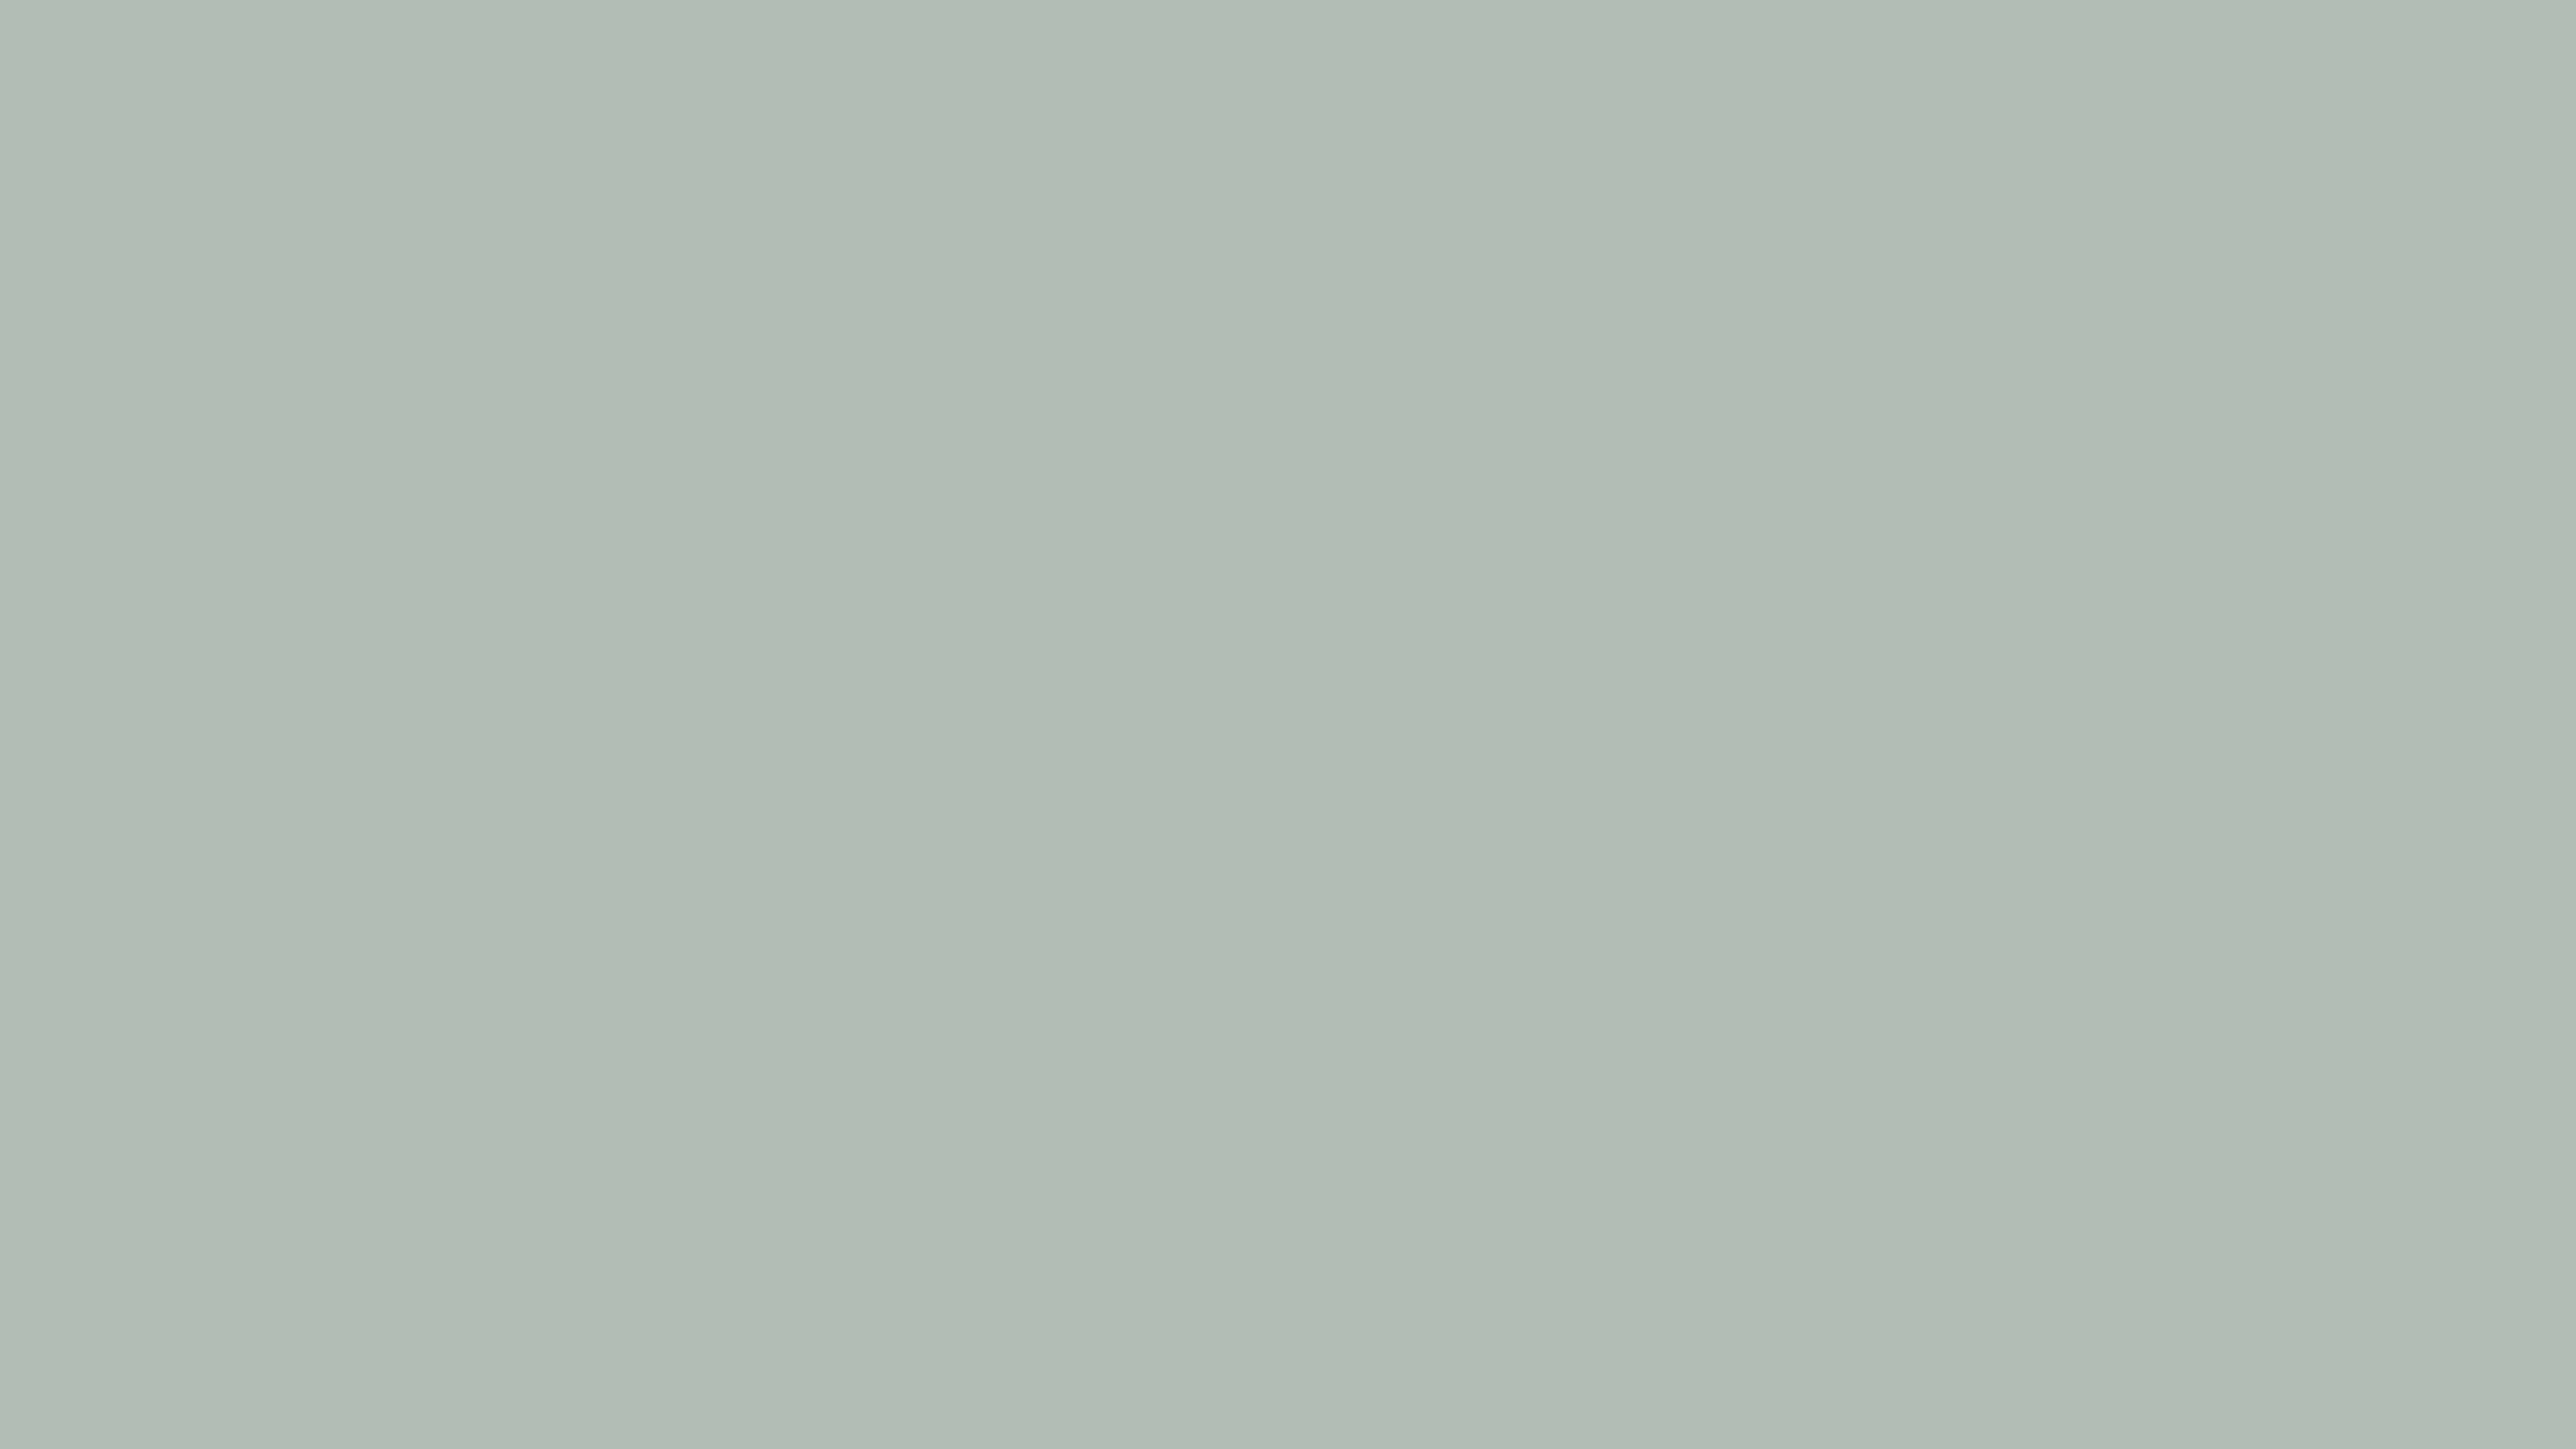 3840x2160 Ash Grey Solid Color Background